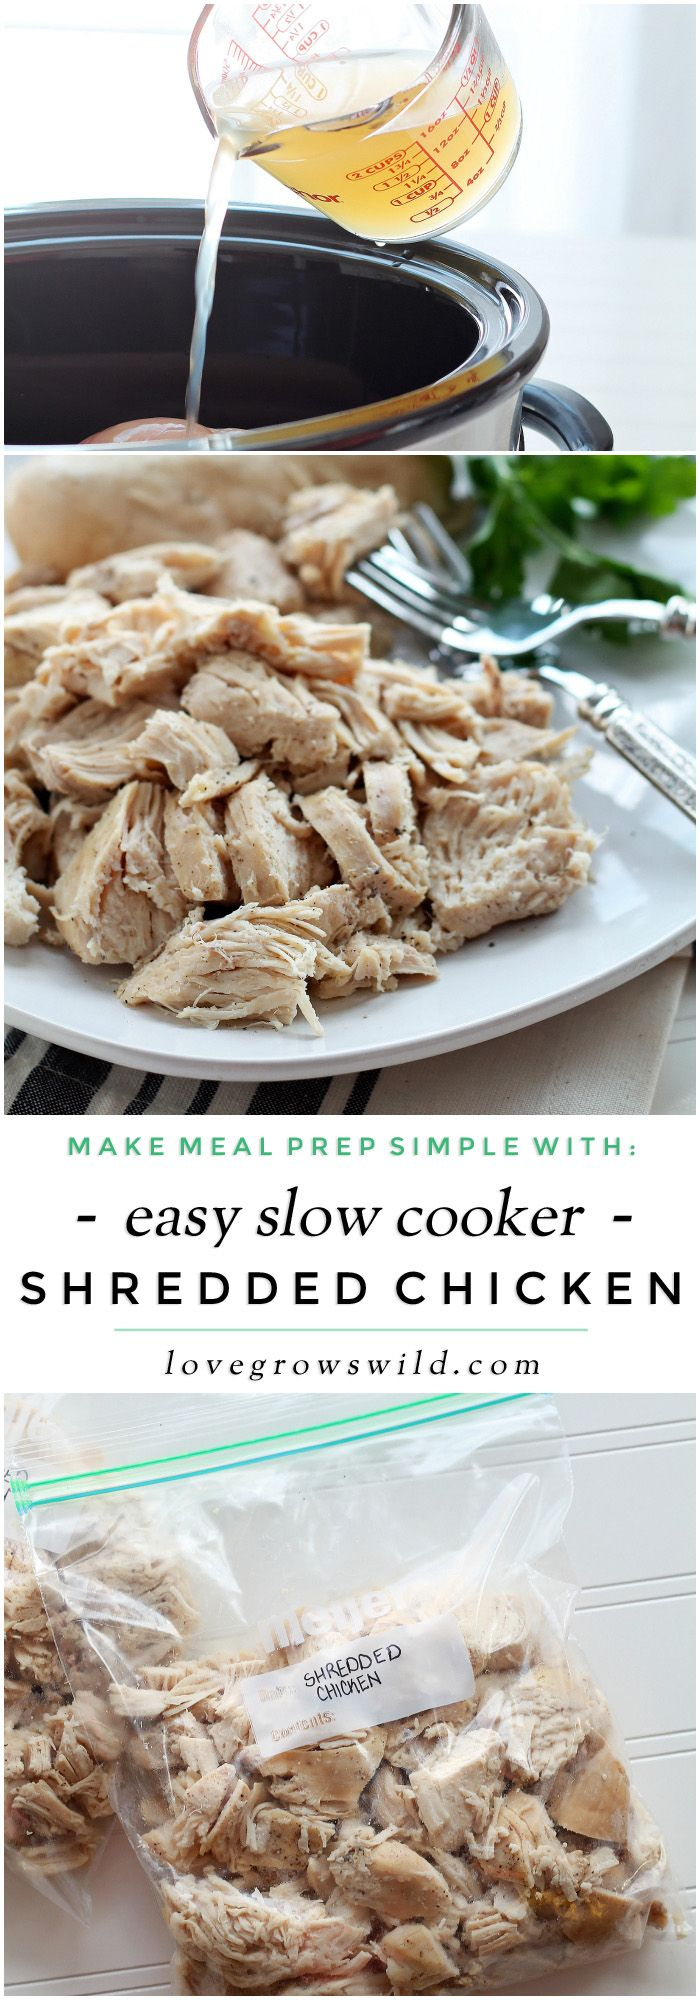 The instruction manual for Crock-Pot's quart slow cooker model not only advises increasing the cooking time when using frozen chicken, but also recommends adding 1 cup of warm liquid to.